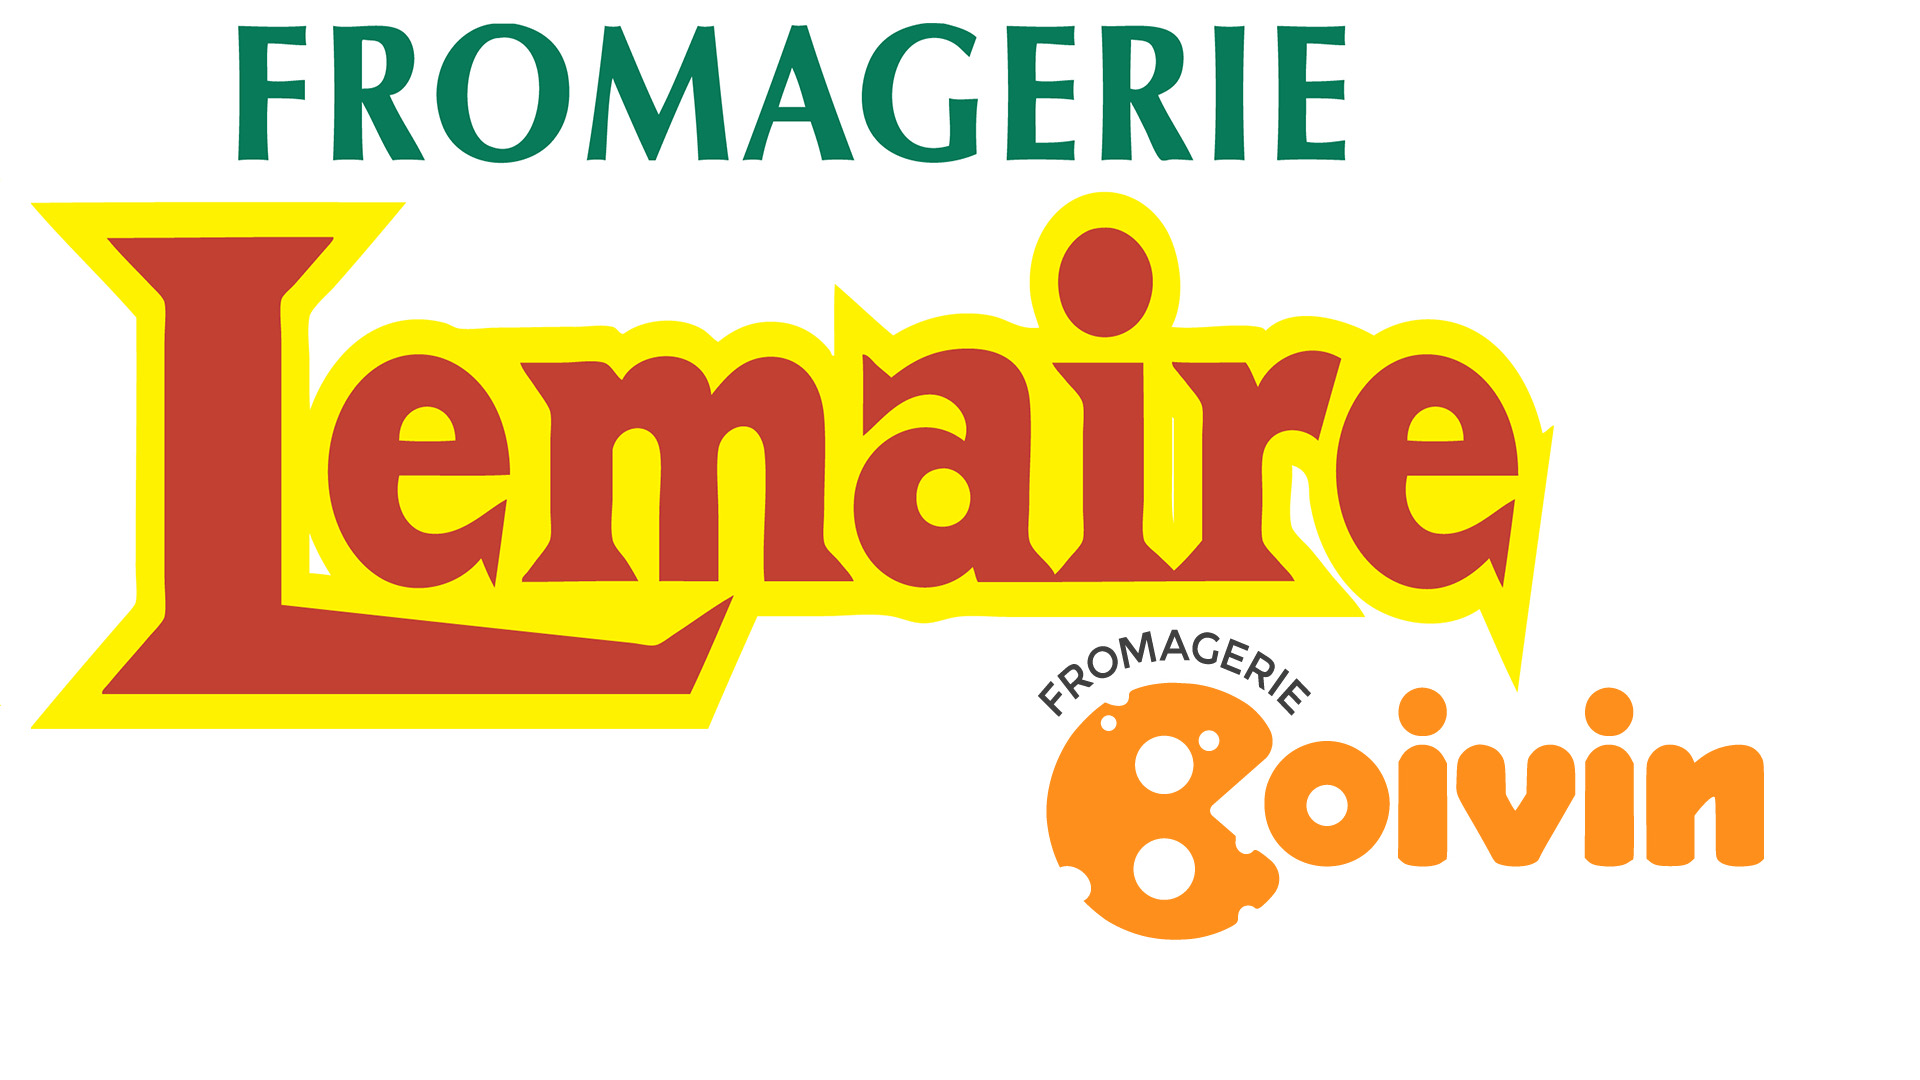 Fromagerie Lemaire Halte St-Germain